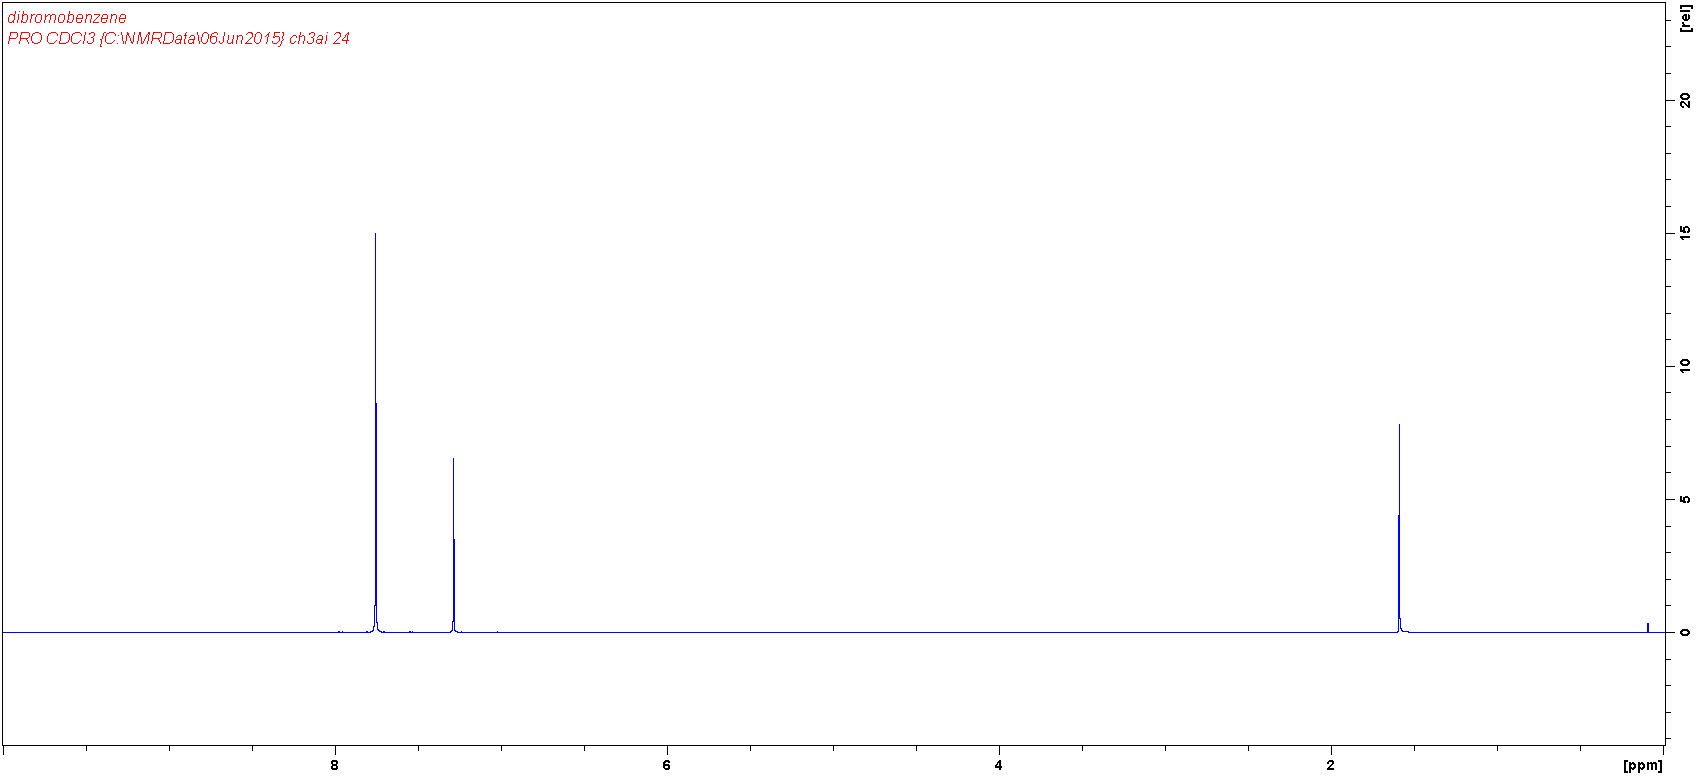 1H NMR of Dibromo-benzothiadiazole in CDCl3